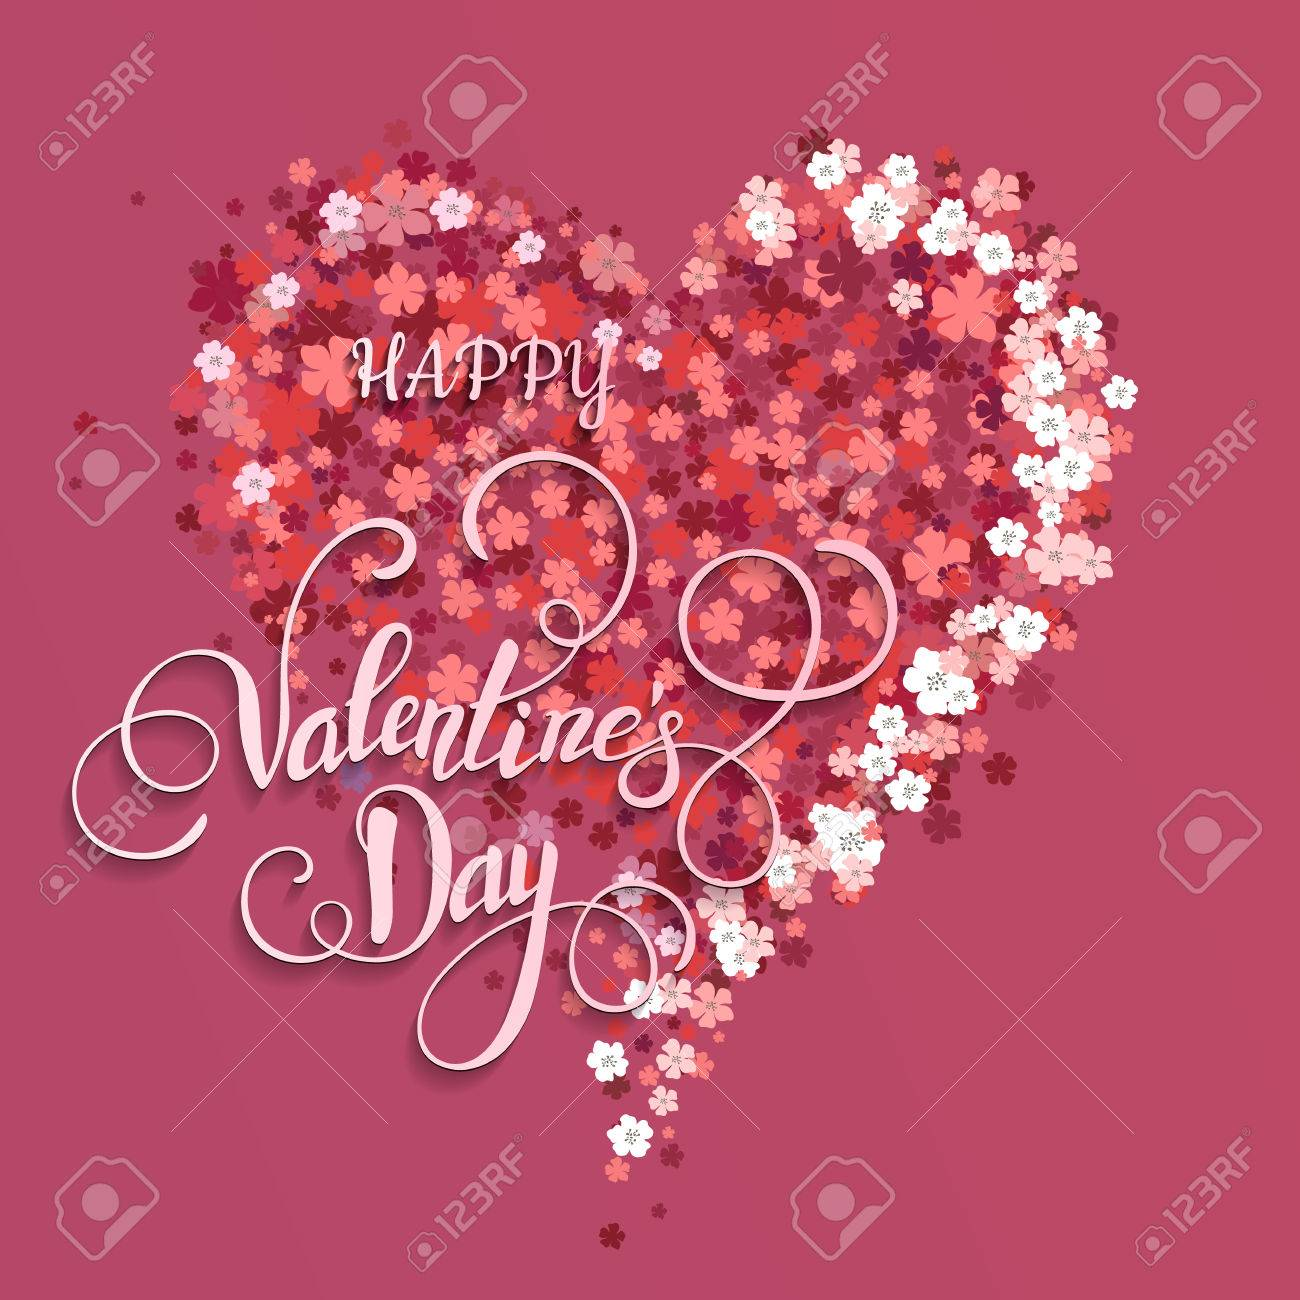 Beautiful Floral Heart Valentine Card Vector Illustration Eps10